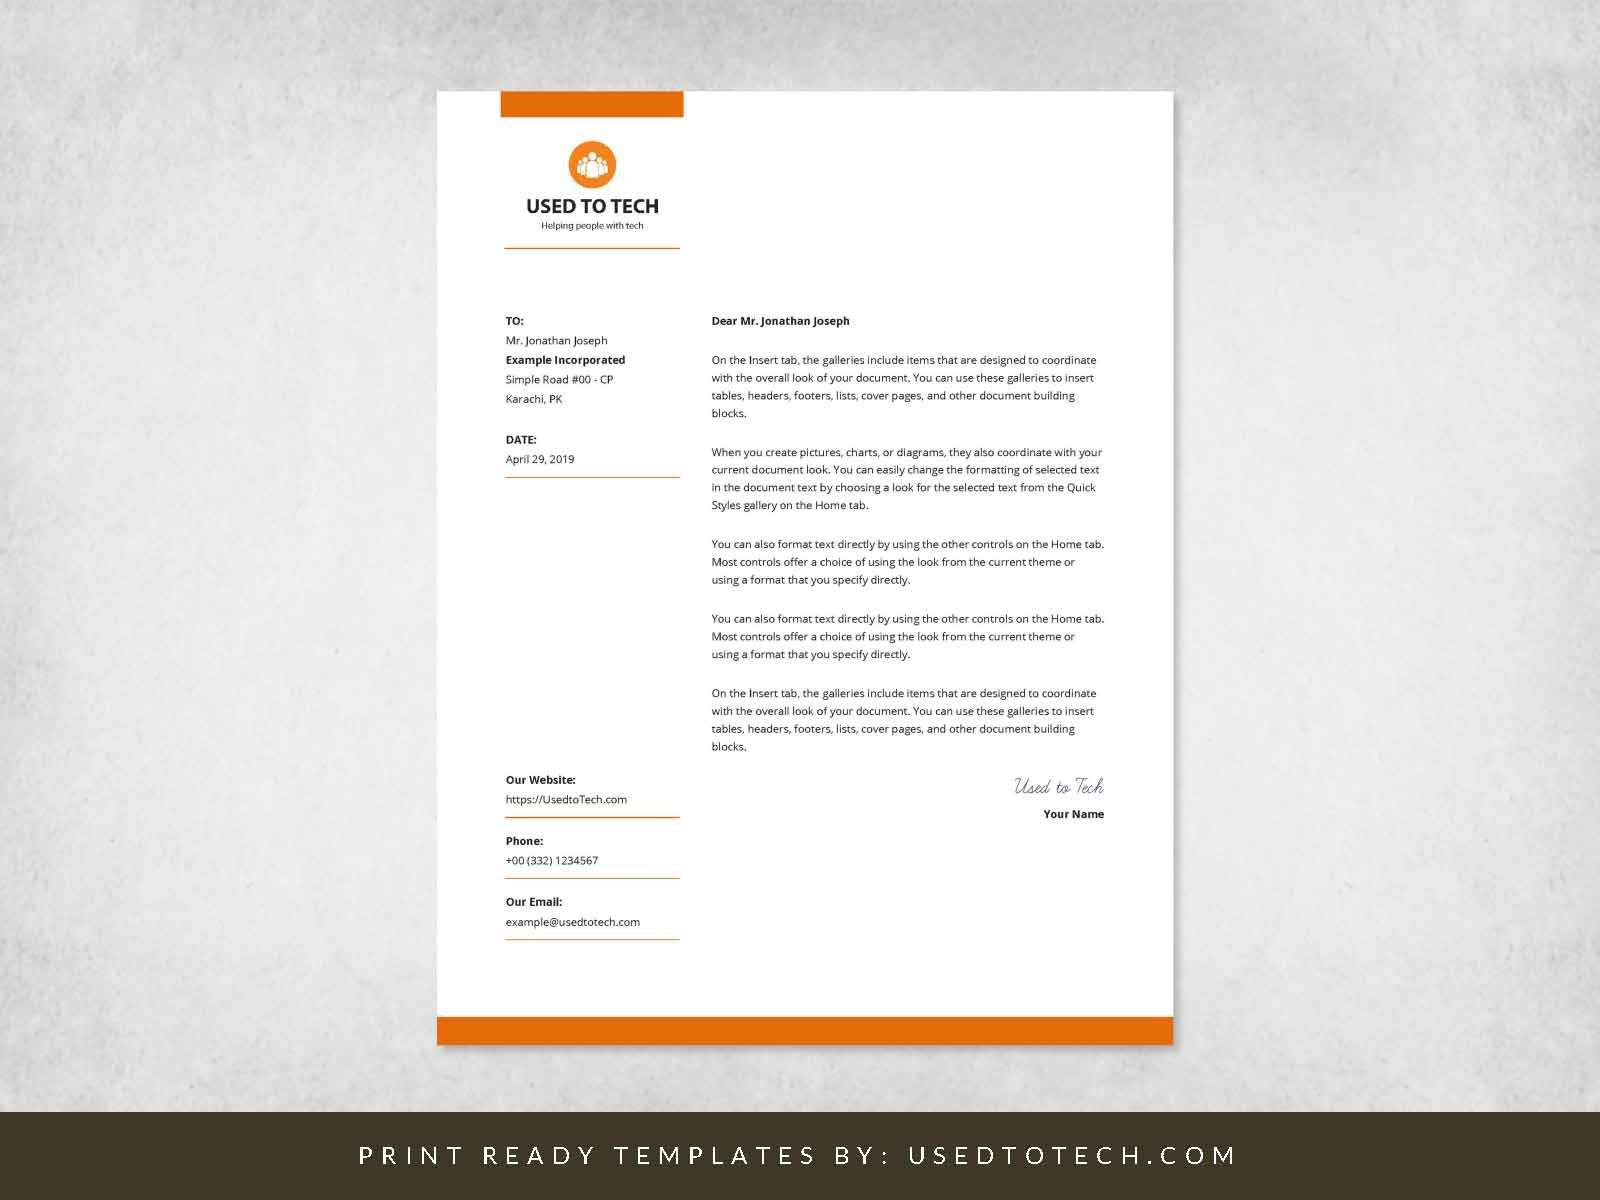 000 Staggering Company Letterhead Format In Word Free Download Image  Sample Template 2020Full